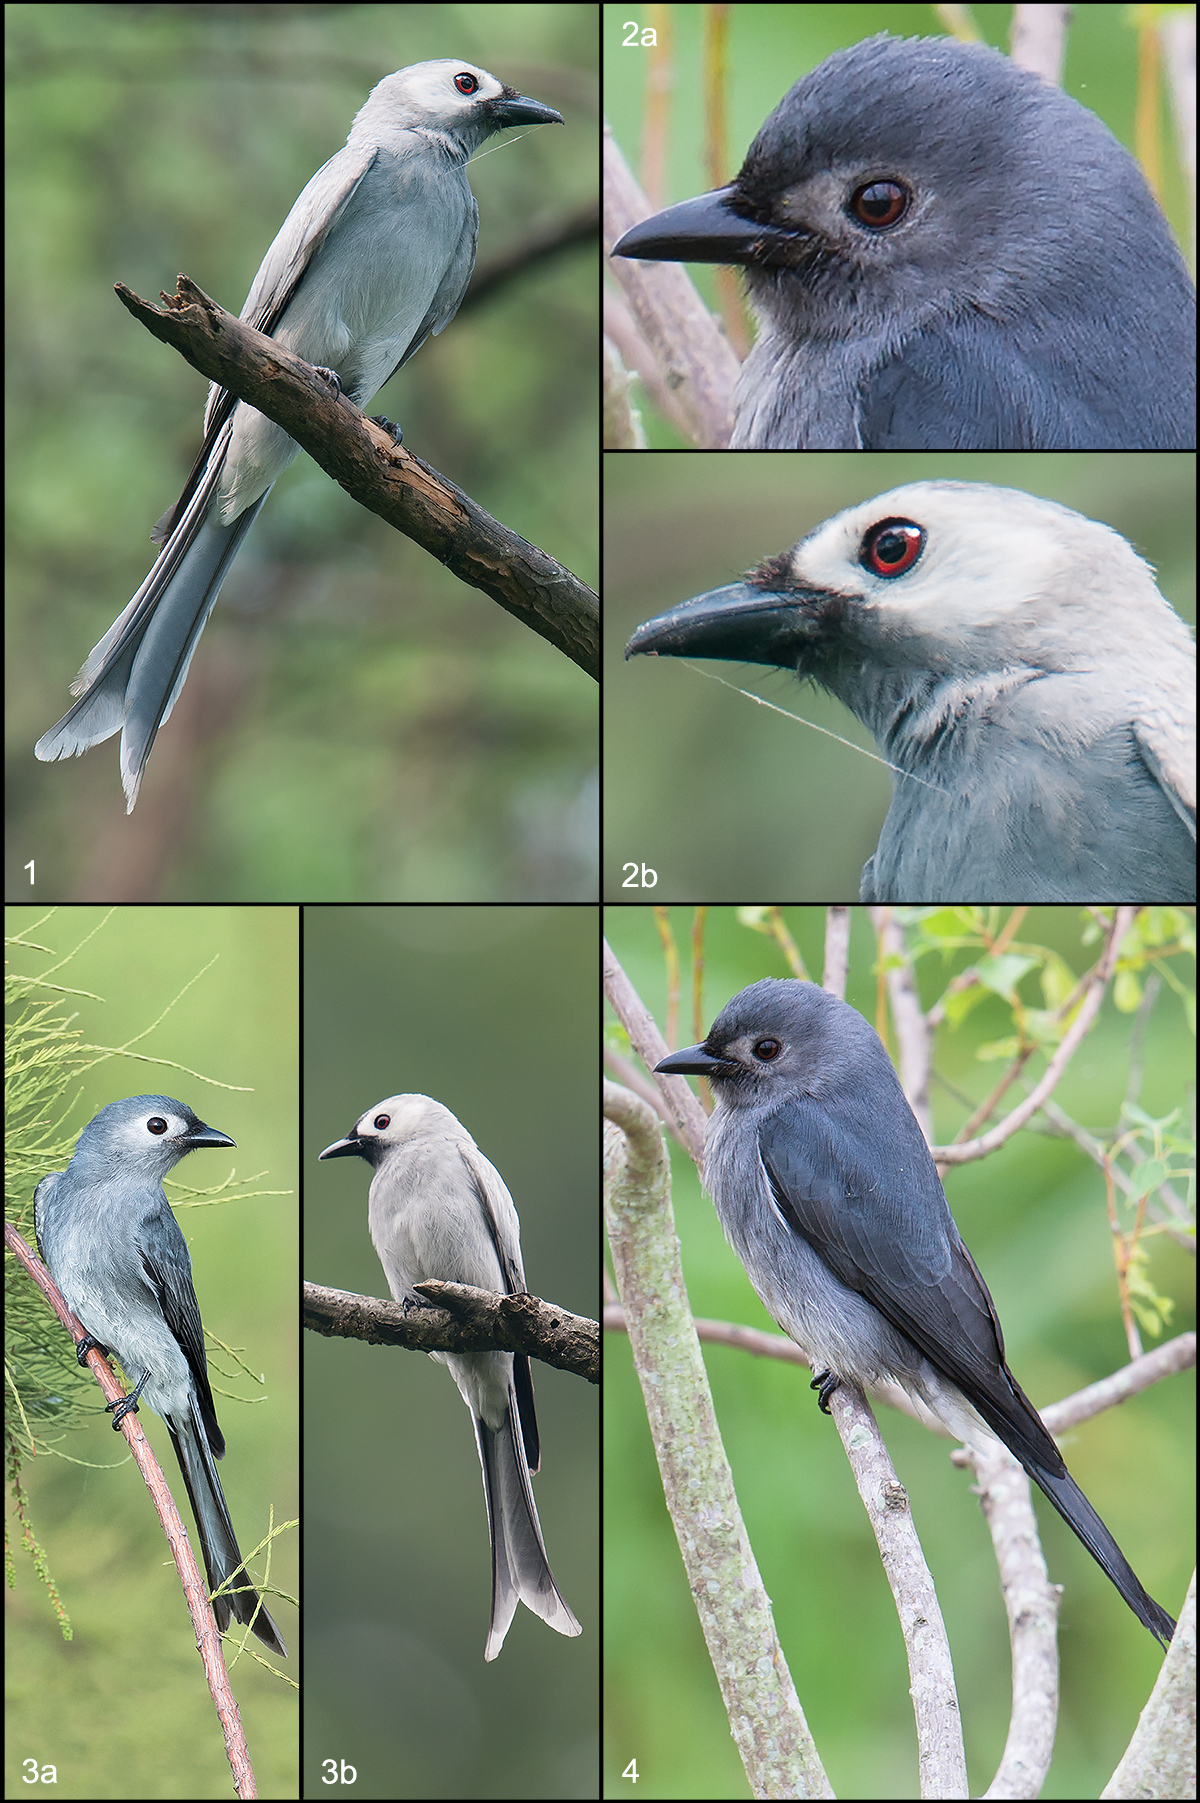 Ashy Drongo Dicrurus leucophaeus. All photos by Craig Brelsford except 3a (by Kai Pflug ).